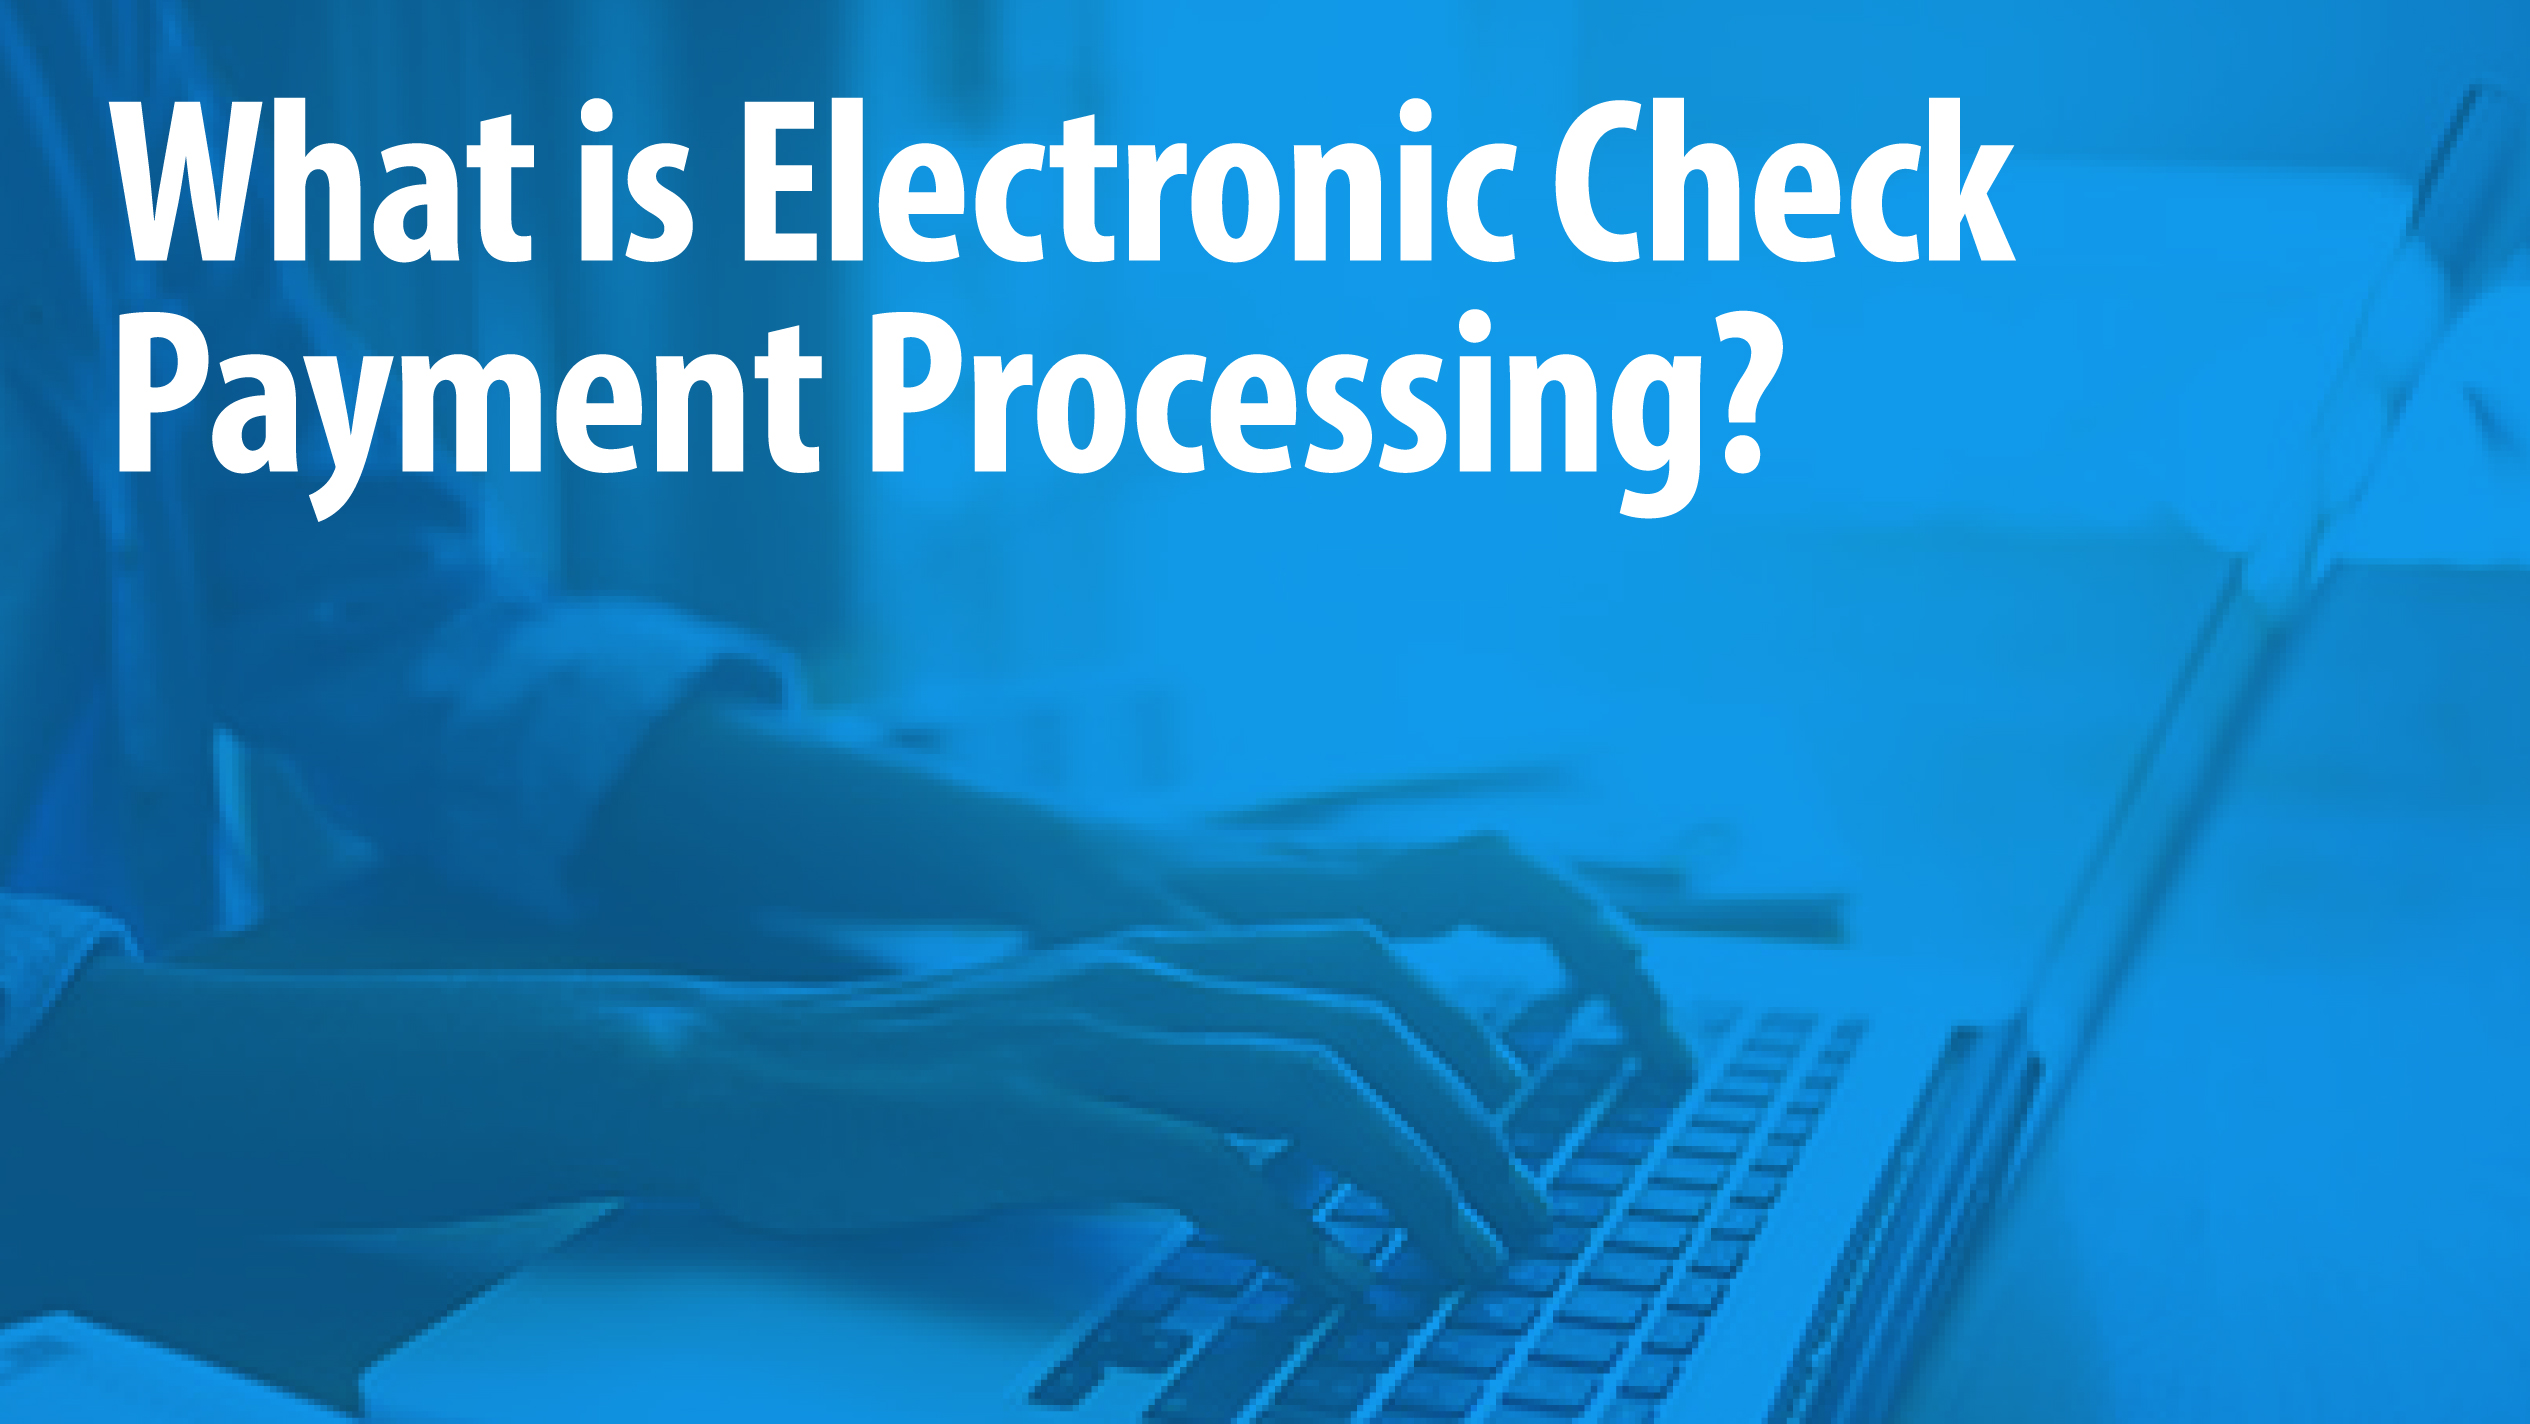 What is Electronic Check Payment Processing?